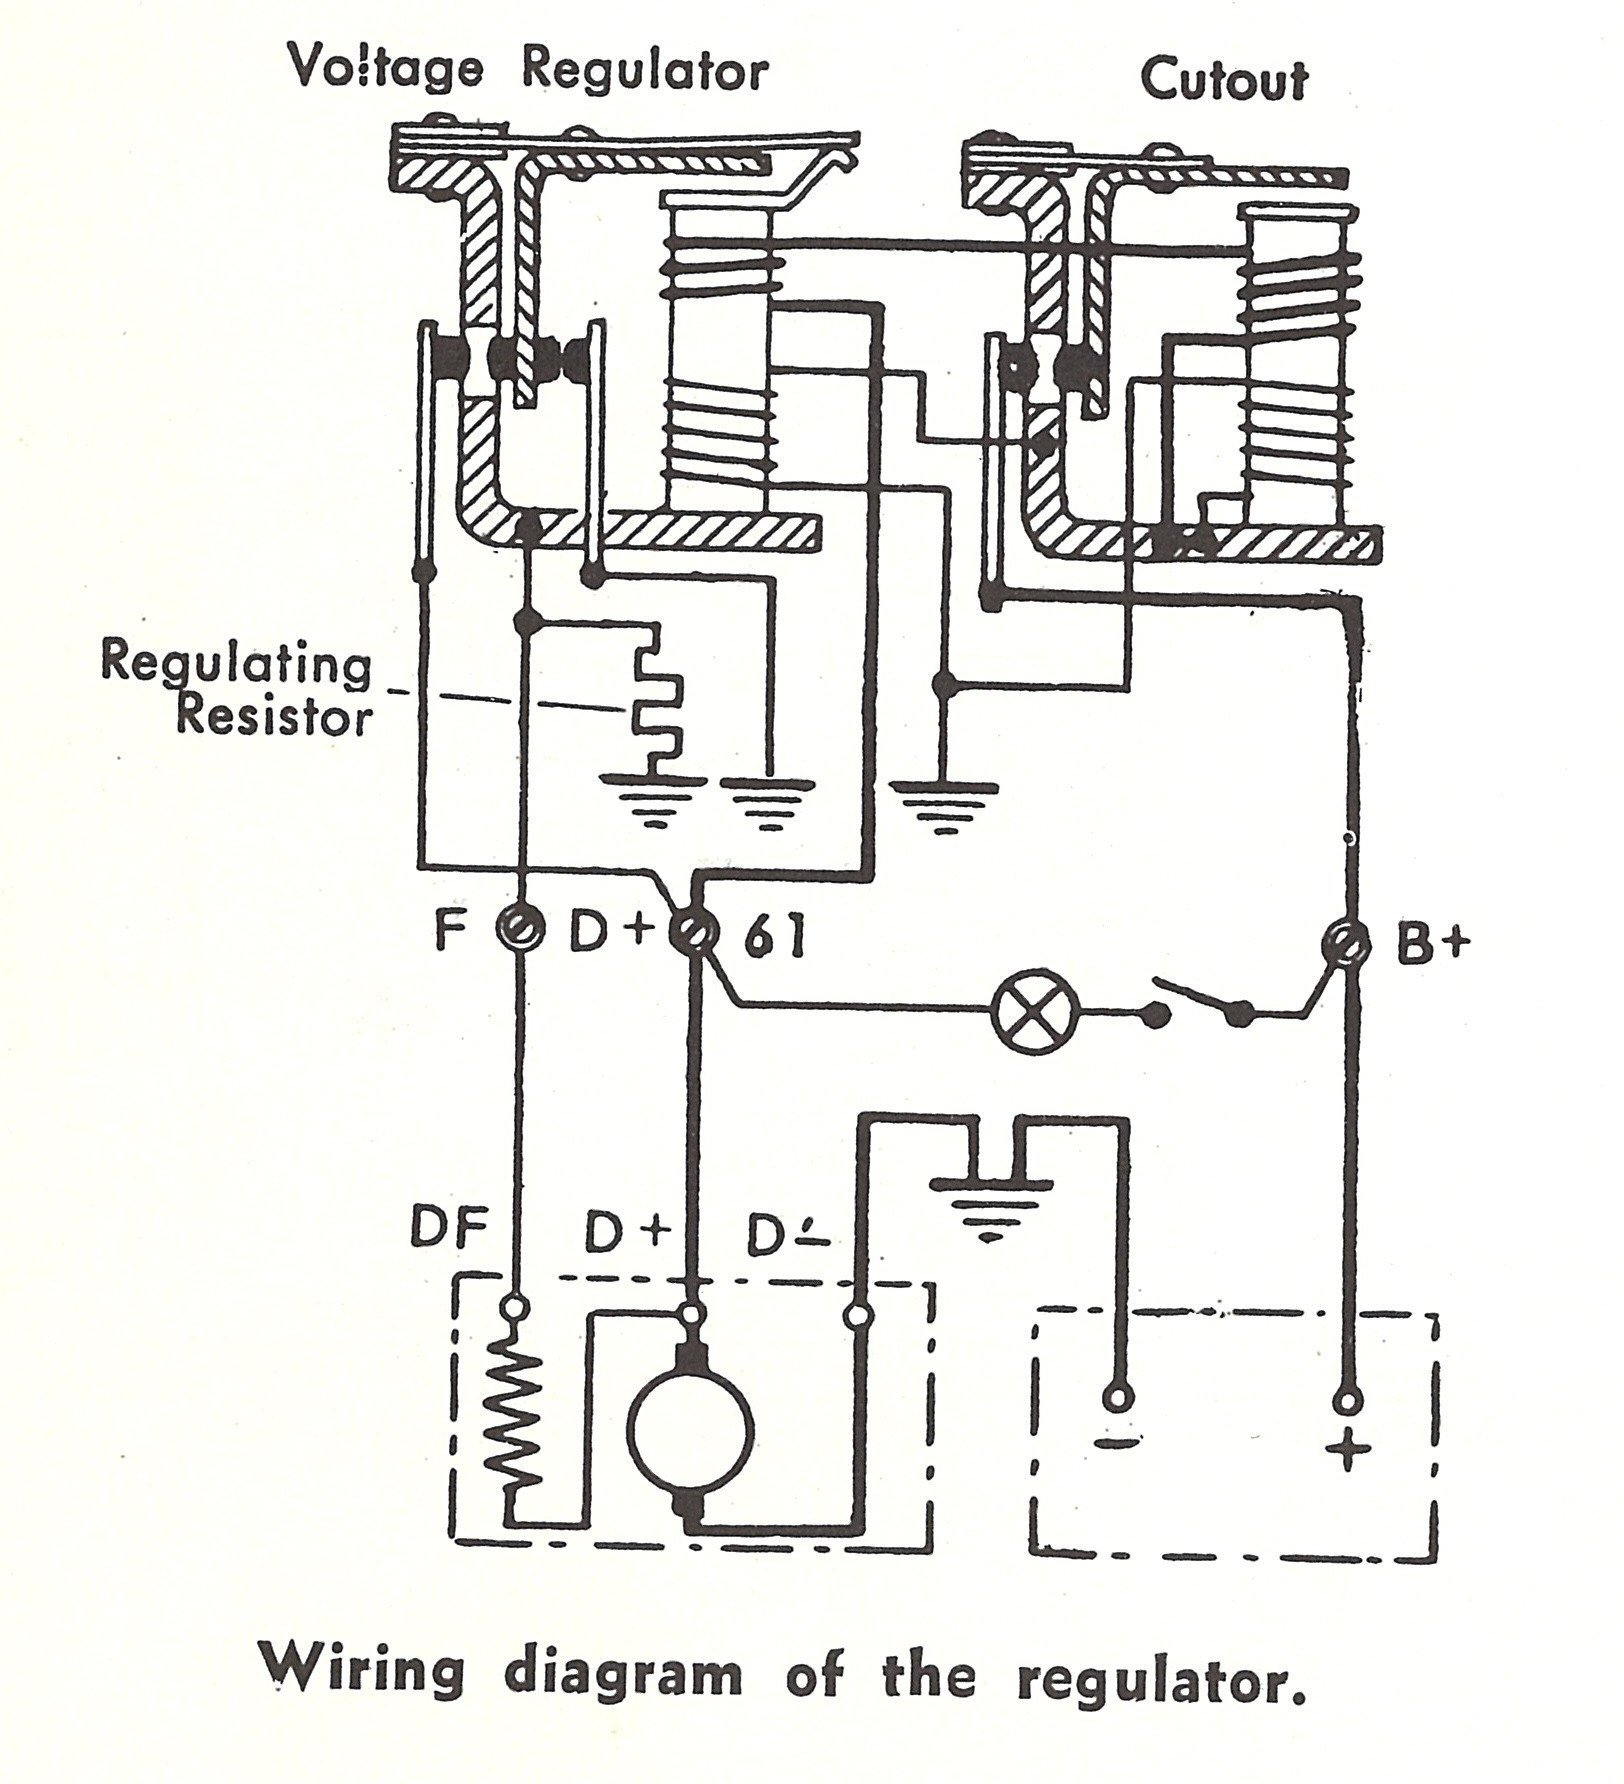 voltage_regulator_diagram_closeup wiring diagram new era voltage regulator wiring diagram and chevy voltage regulator wiring diagram at mifinder.co